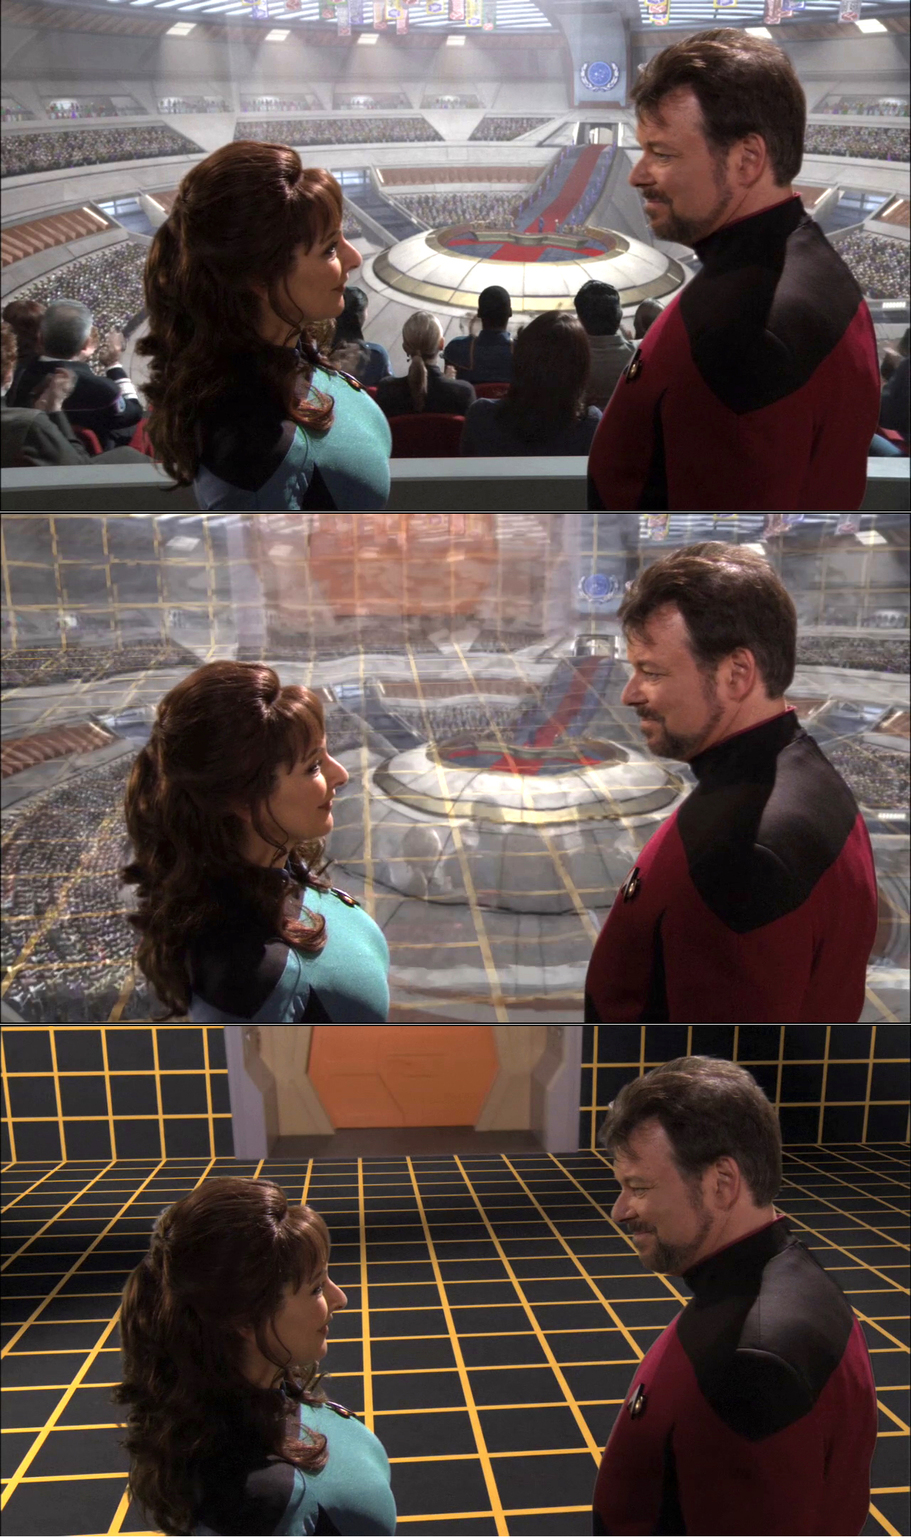 From Holodeck 'reality' to just an empty room with Counselor Deanna Troi (Marina Sirtis, left) and William Riker (Jonathan Frakes, right). - Image Credit:  Star Trek/Screenshot/Memory Alpha ,  CC BY-NC